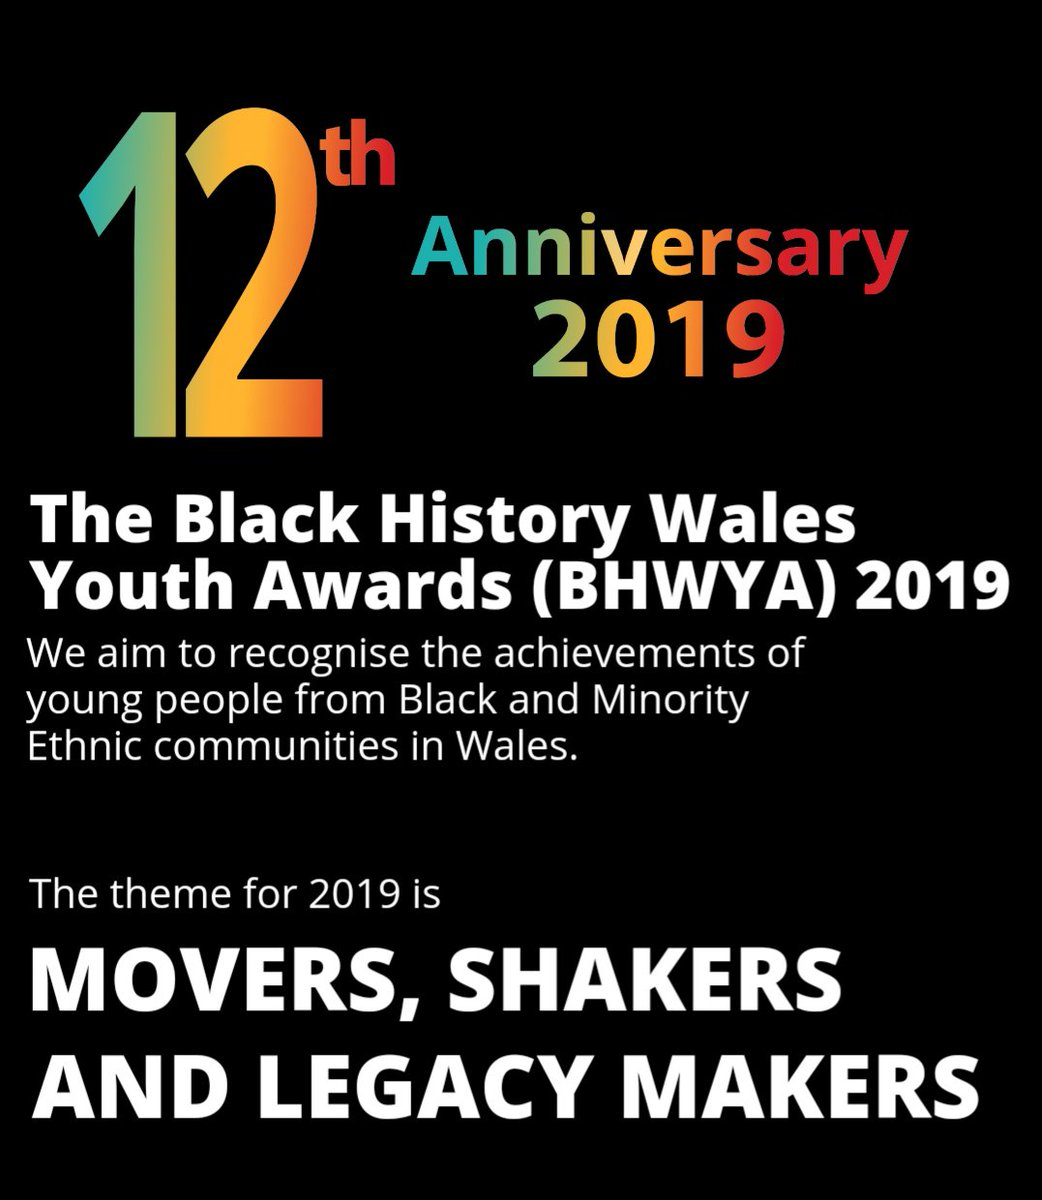 The Black History Wales Youth Awards 2019 Open for Nominations - Do you know someone aged 13-30 who goes above and beyond in our community? Nominate online now, by post or email #BHMWales2019 #BHMWales #blackhistorymonth  #BHMWales12 #BHMCymru365 #BHM    https:// mailchi.mp/510cdbe4c51e/t he-black-history-wales-youth-awards-bhwya-2019-open-for-nominations  … <br>http://pic.twitter.com/ABHE7zQn7F